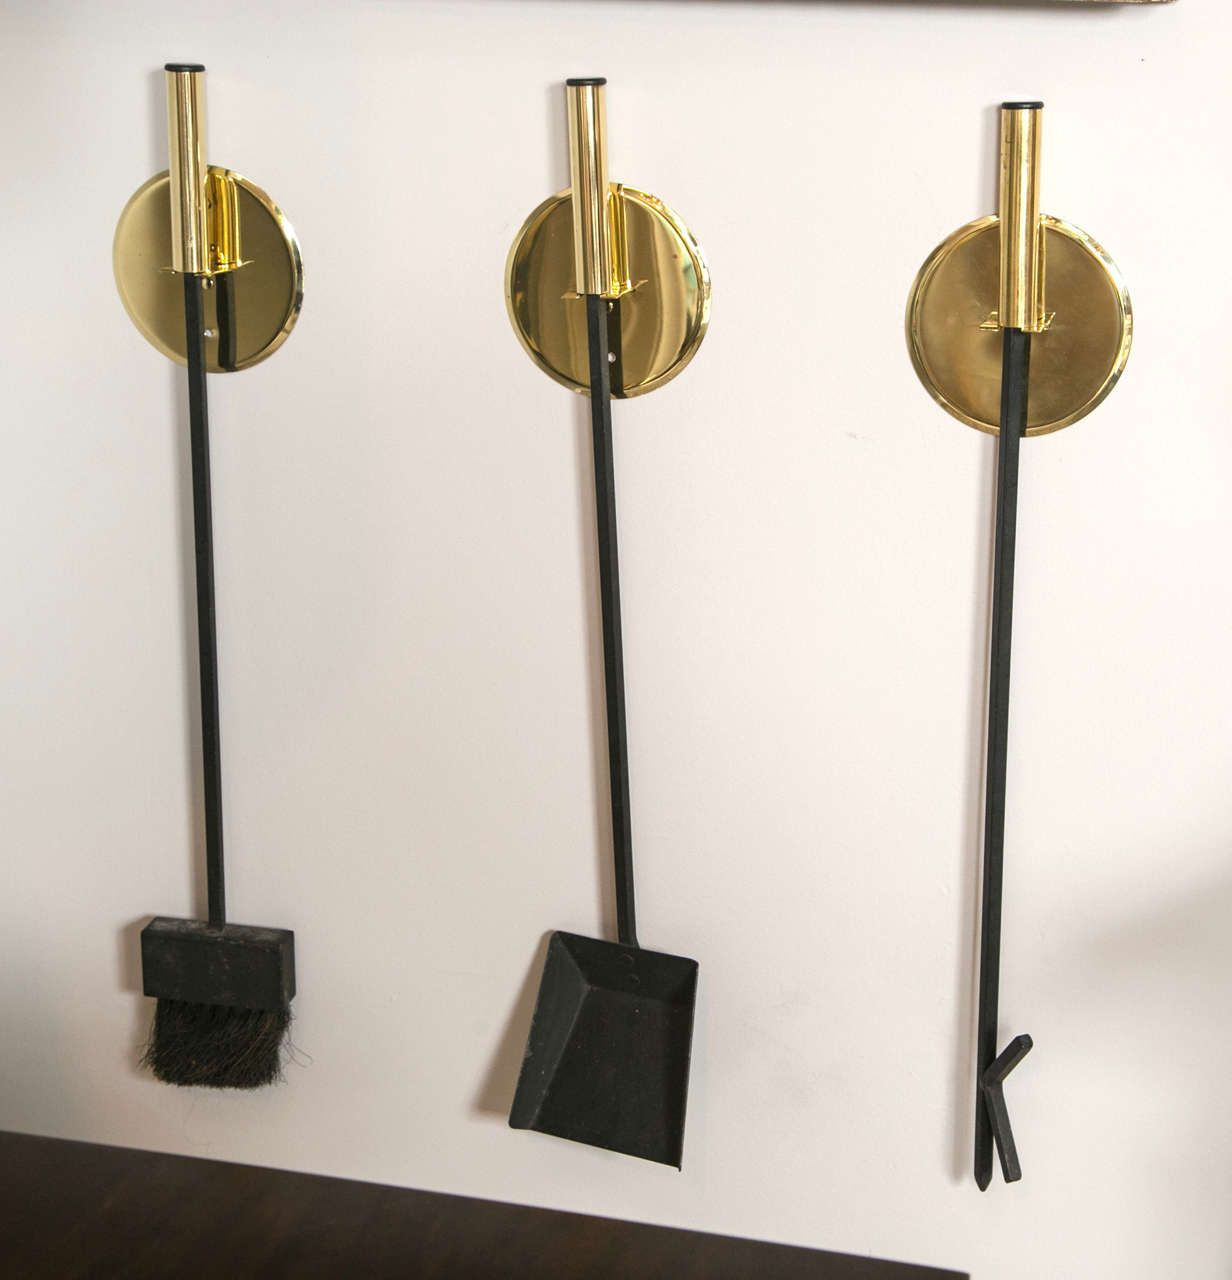 midcentury modern fireplace tool set  modern fireplace tools  - wall mounted mid century brass fireplace tools set of three